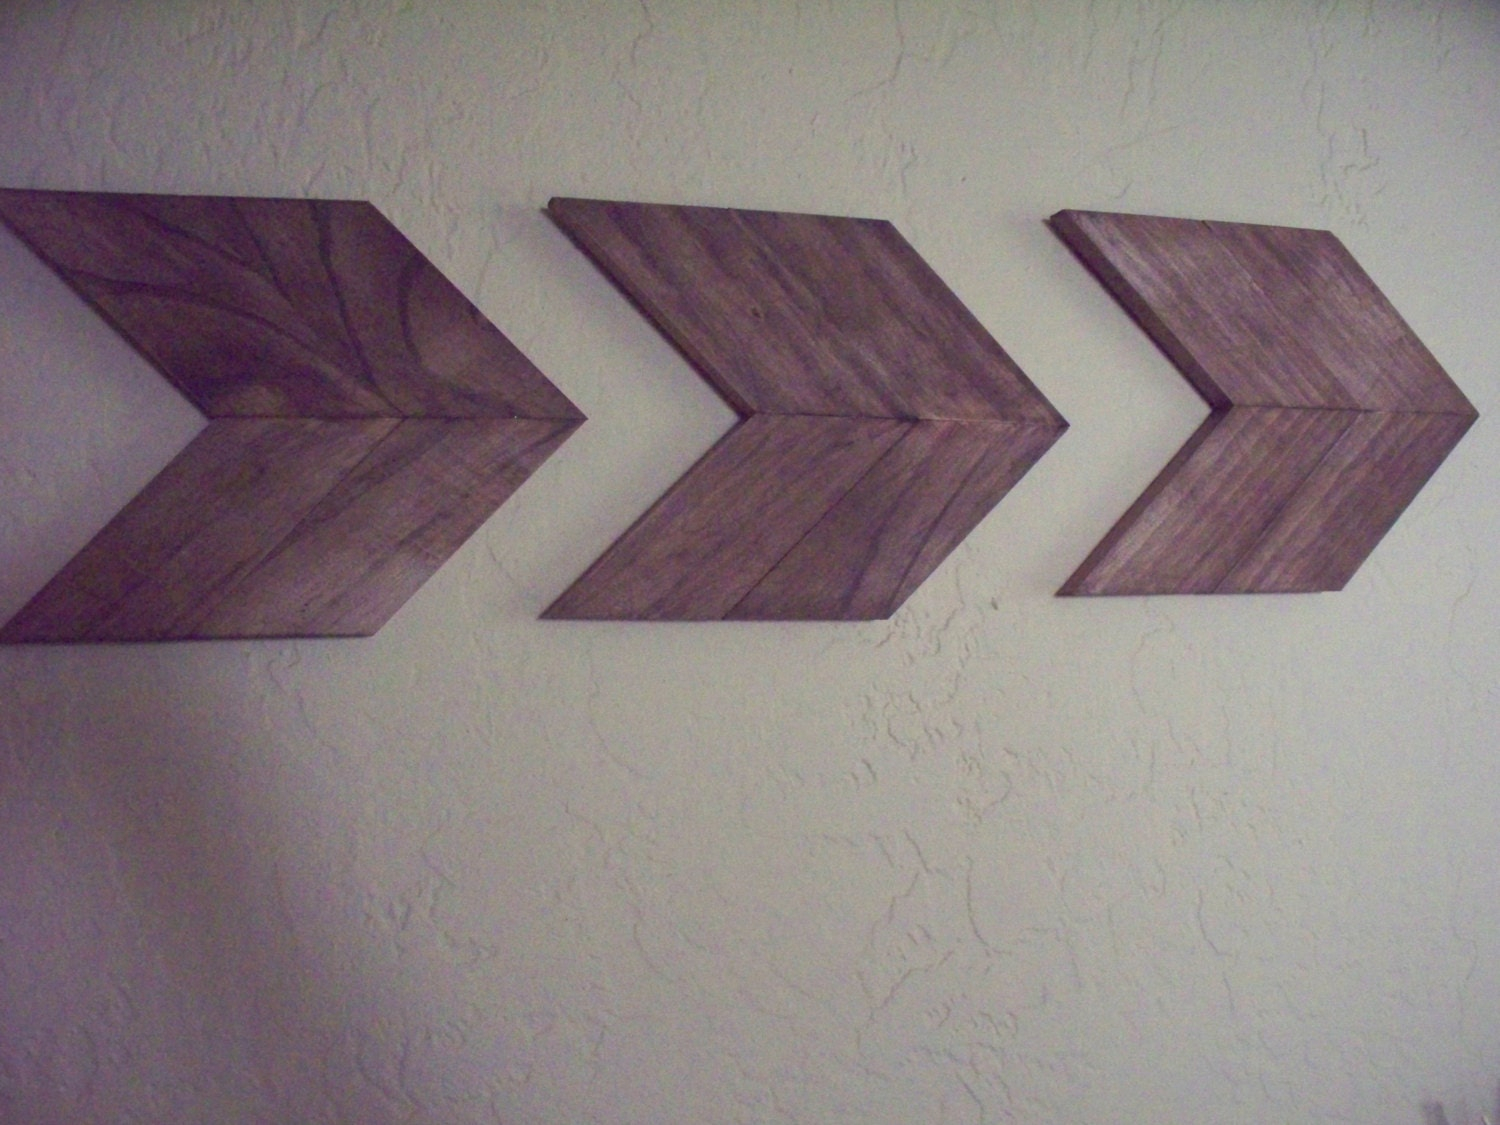 Arrows For Wall Decor : Wood arrows wall decor housewarming gift wedding by snaksaks